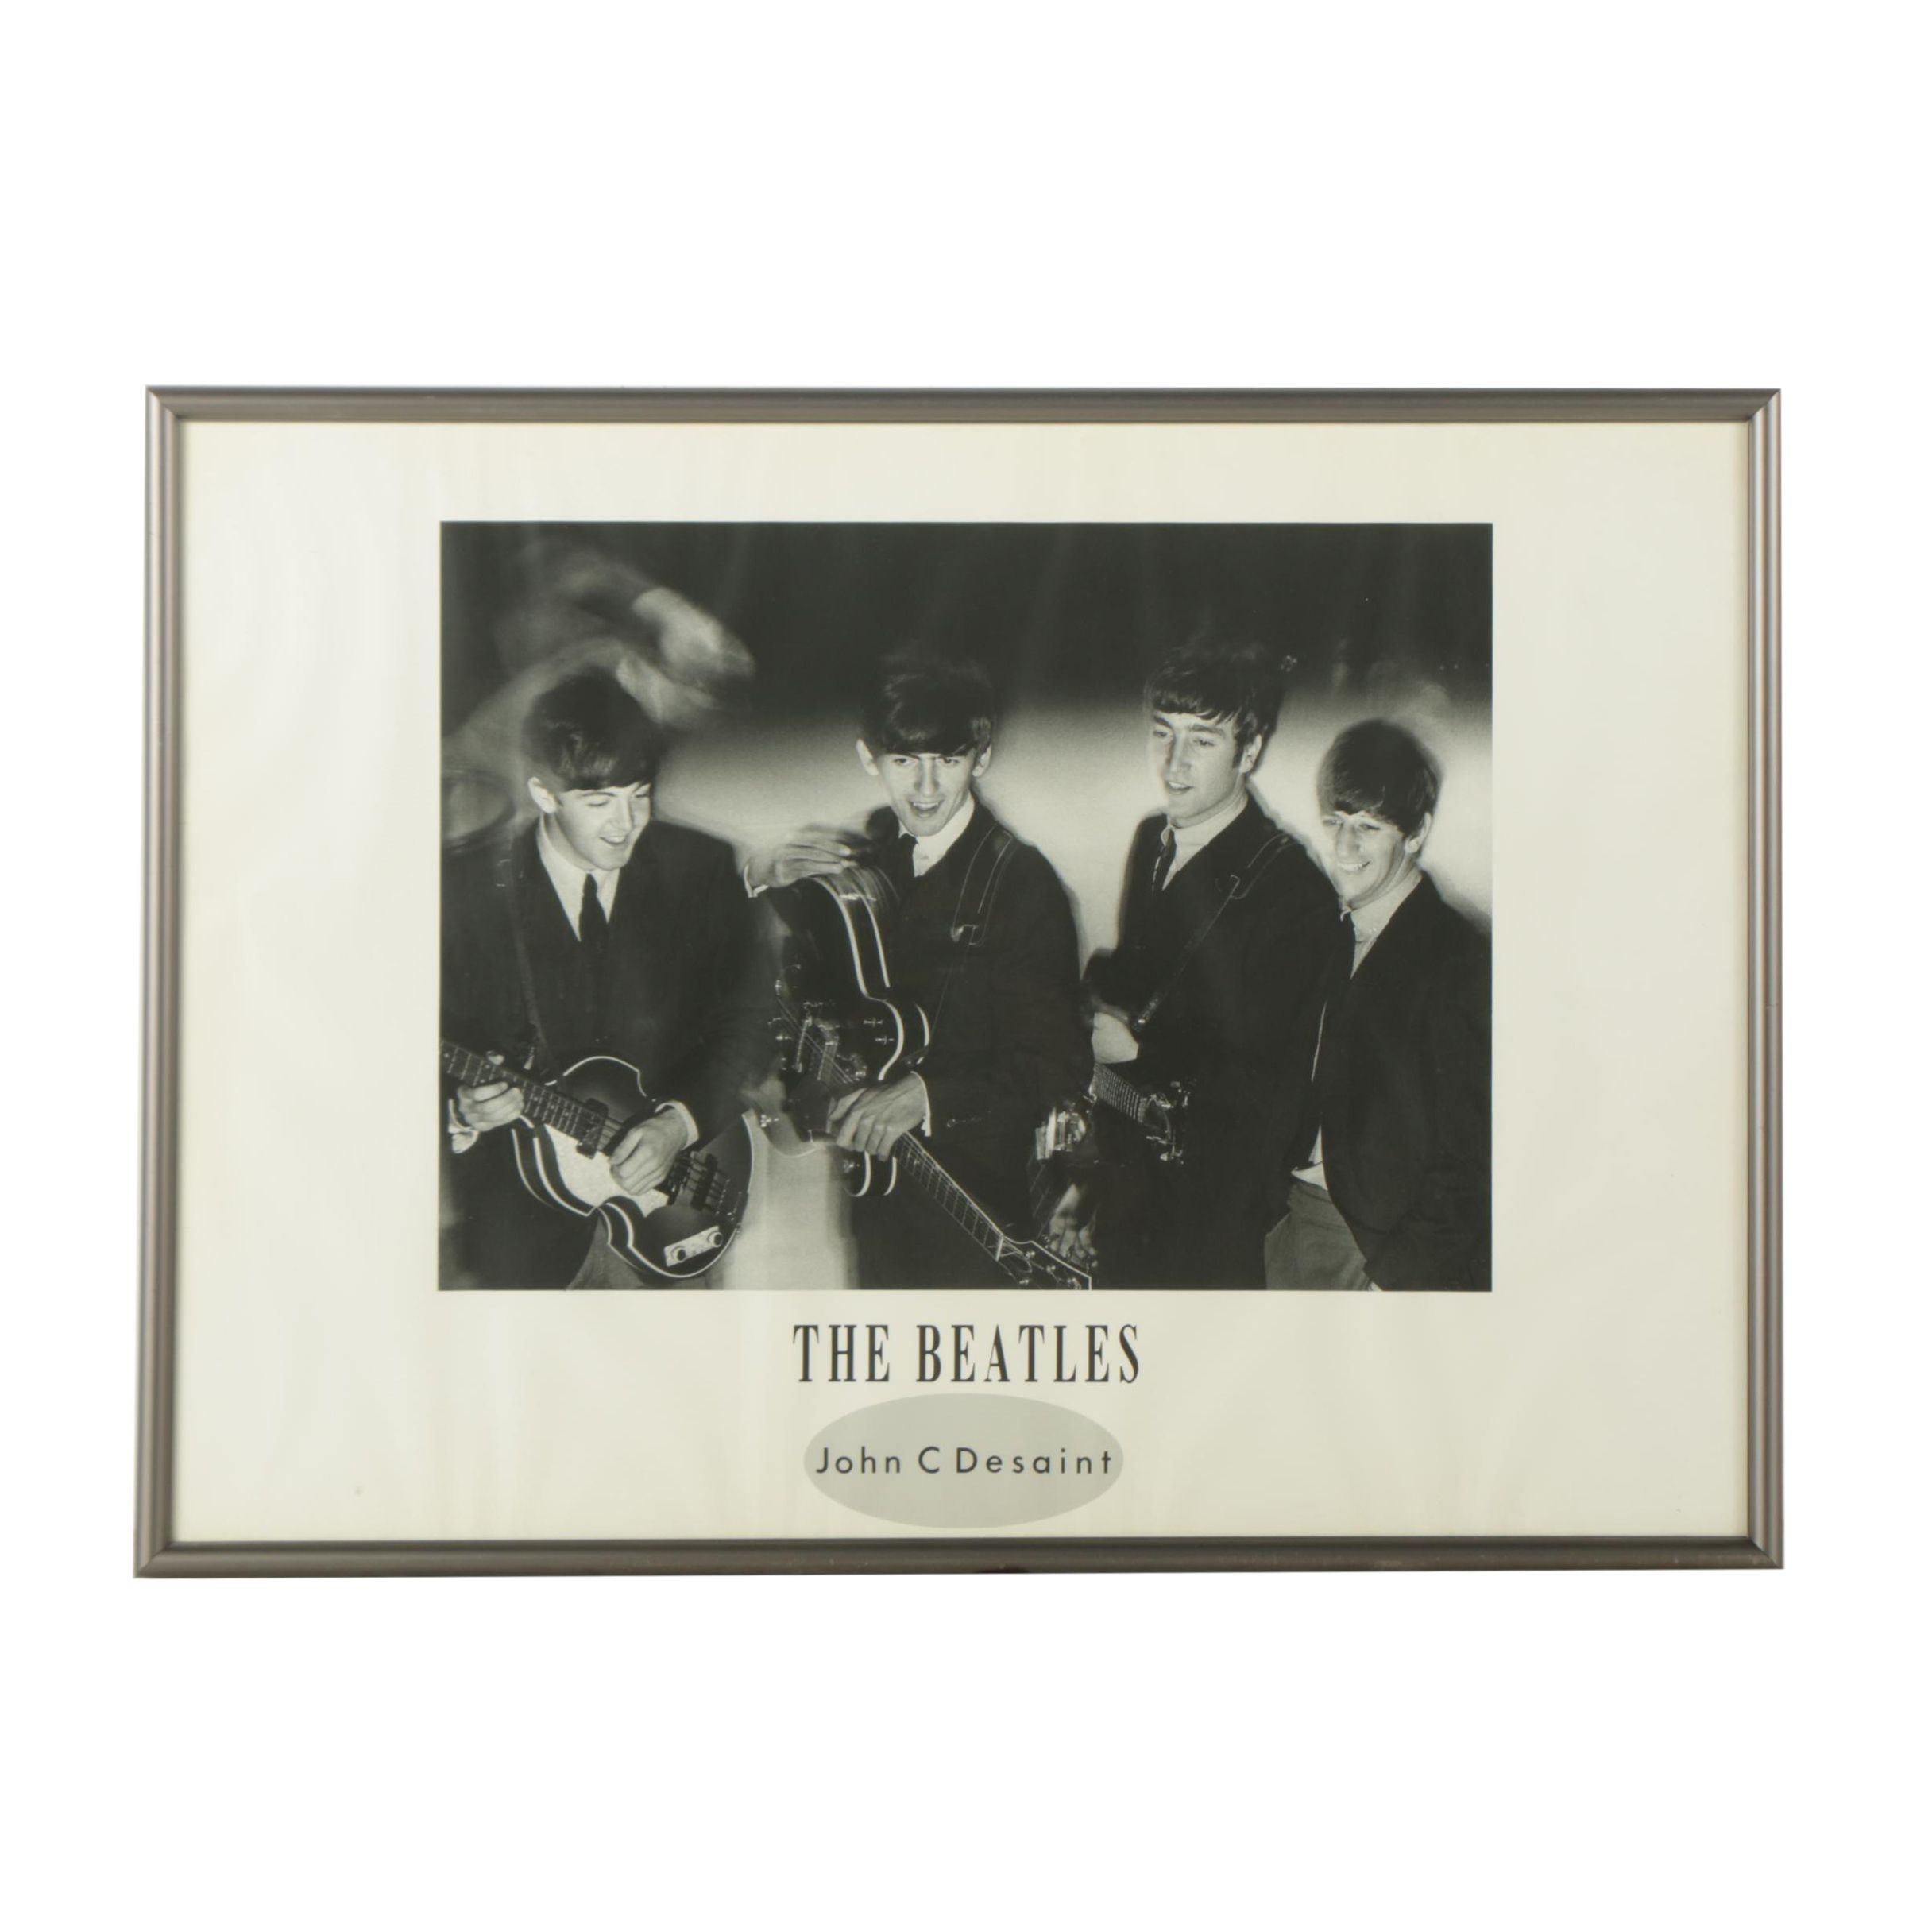 Halftone Print on Paper After John C. Desaint Photograph of the Beatles